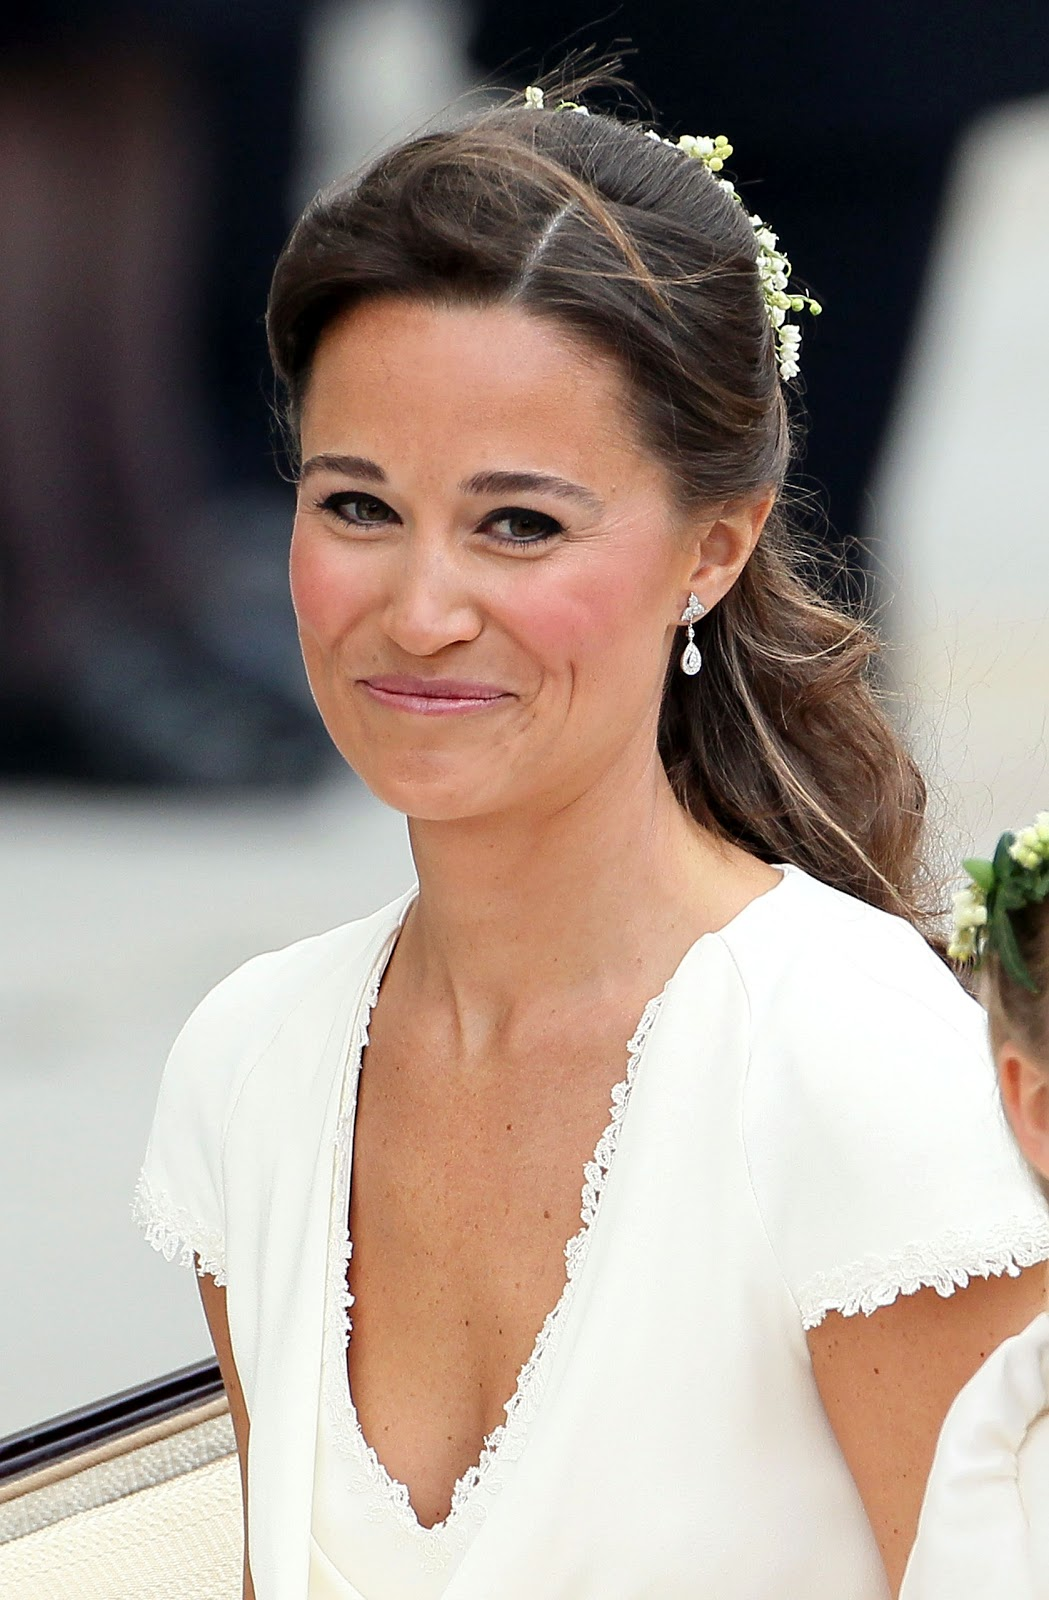 http://1.bp.blogspot.com/-pwpBx1Tz34M/T45xTGditII/AAAAAAAADvY/7DVrmvqmgyQ/s1600/middleton-pippa-pictures-Pippa-Middleton.jpg